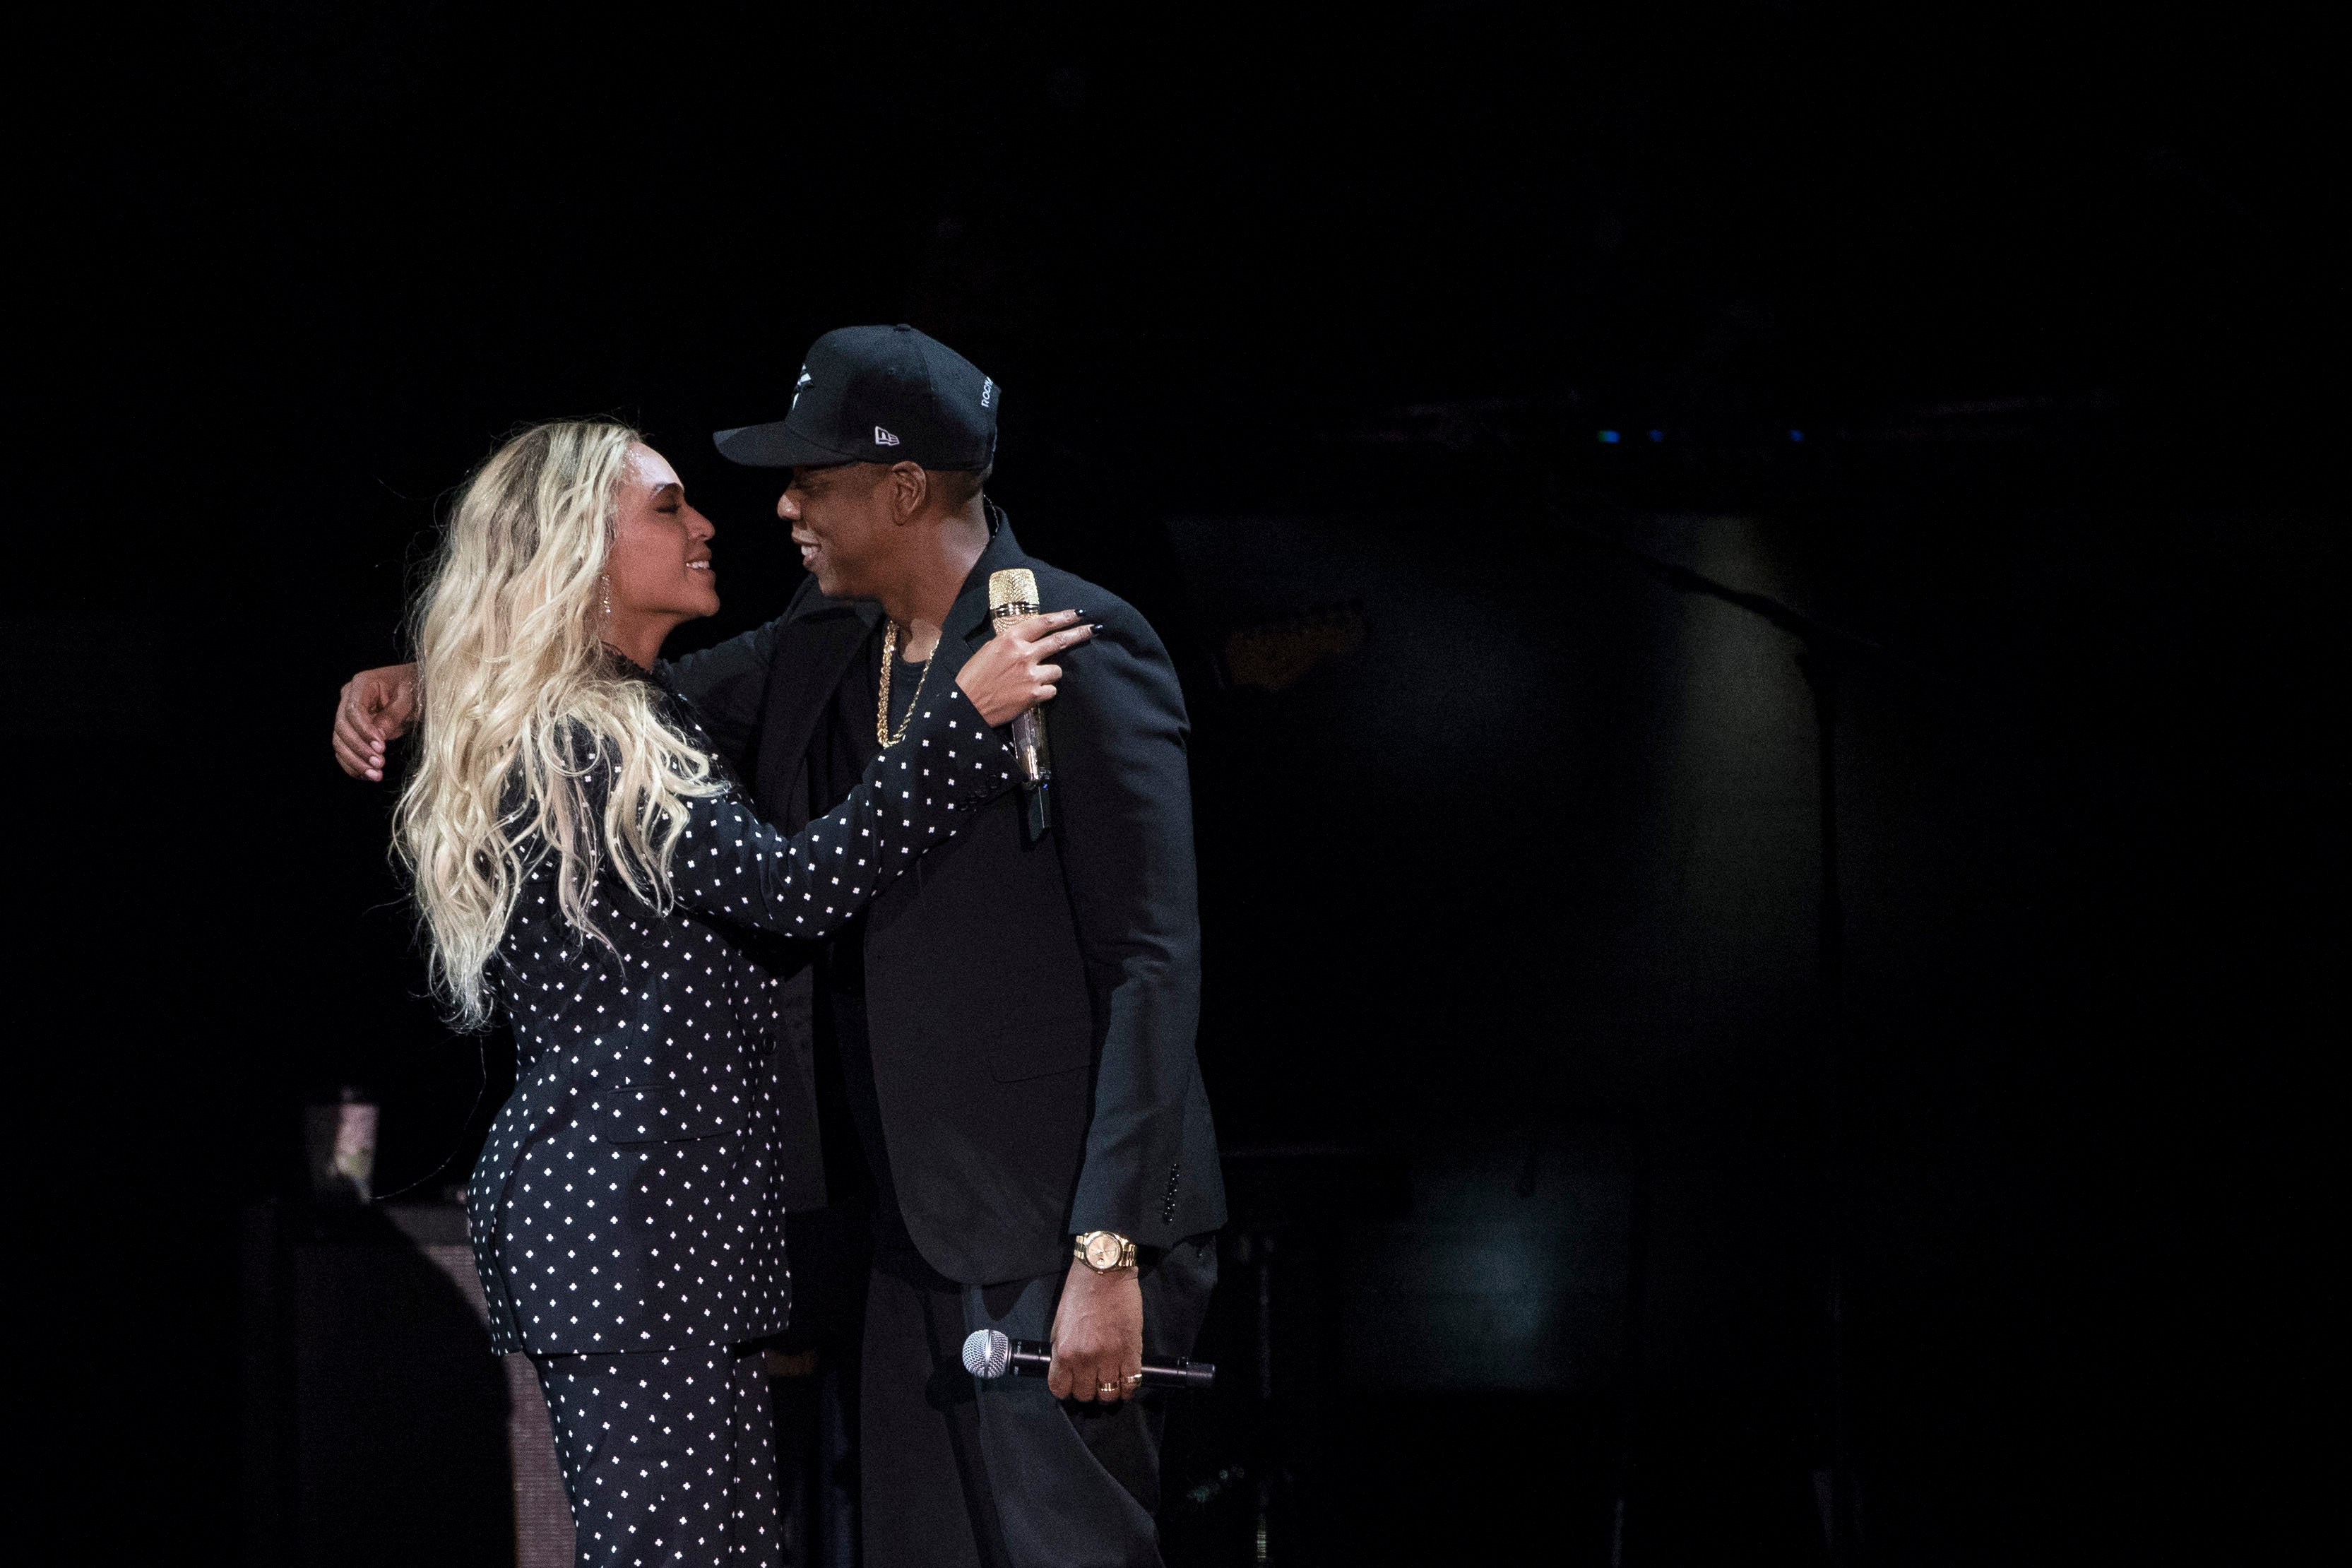 Jay Z and Beyonce embrace during a campaign rally for Democratic presidential candidate, Hillary Clinton, in Cleveland, Friday, Nov. 4, 2016. Clinton's campaign is turning to a series of star-studded free concerts in swing states to try and energize young